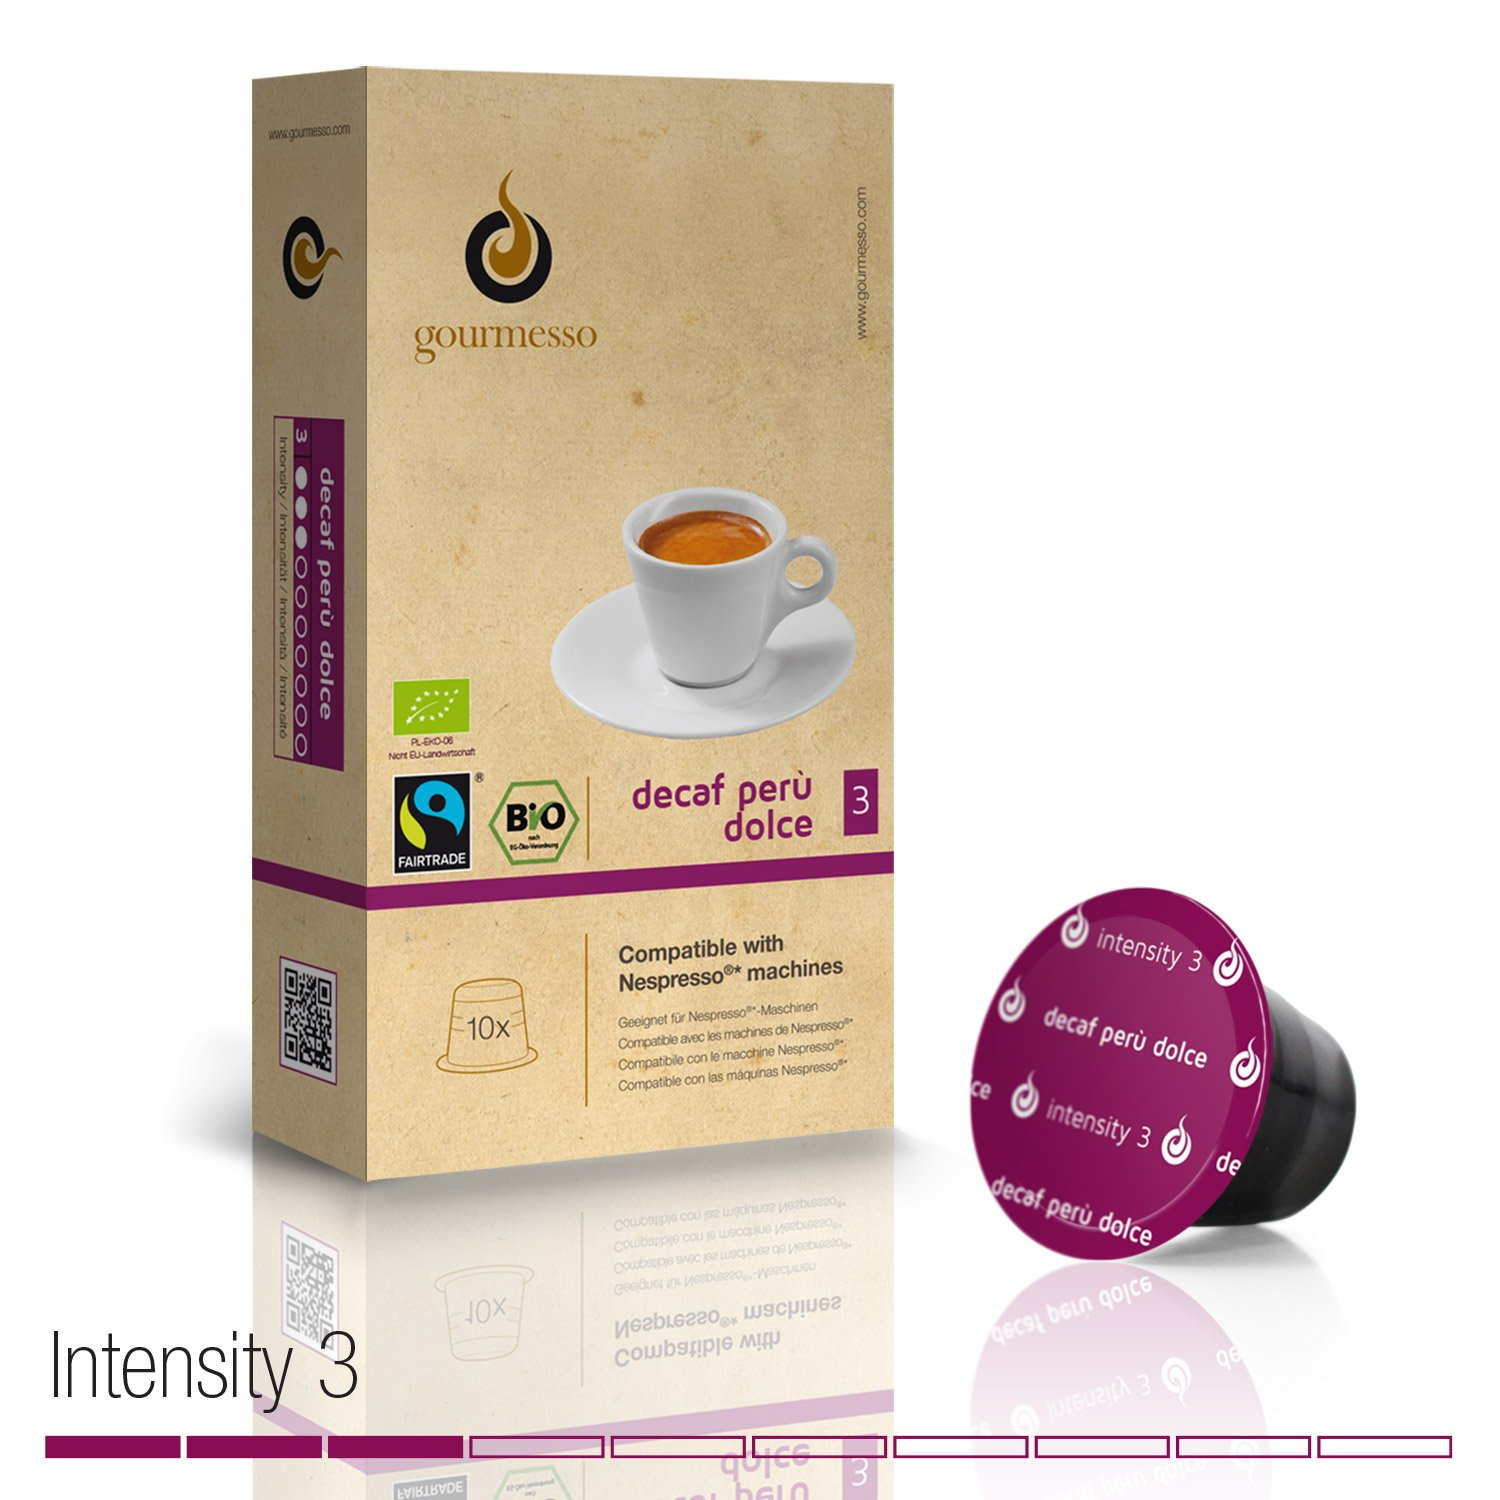 Gourmesso Decaf Perù Dolce - 10 Nespresso Compatible Coffee Capsules - Organic and Fair Trade: Amazon.com: Grocery & Gourmet Food